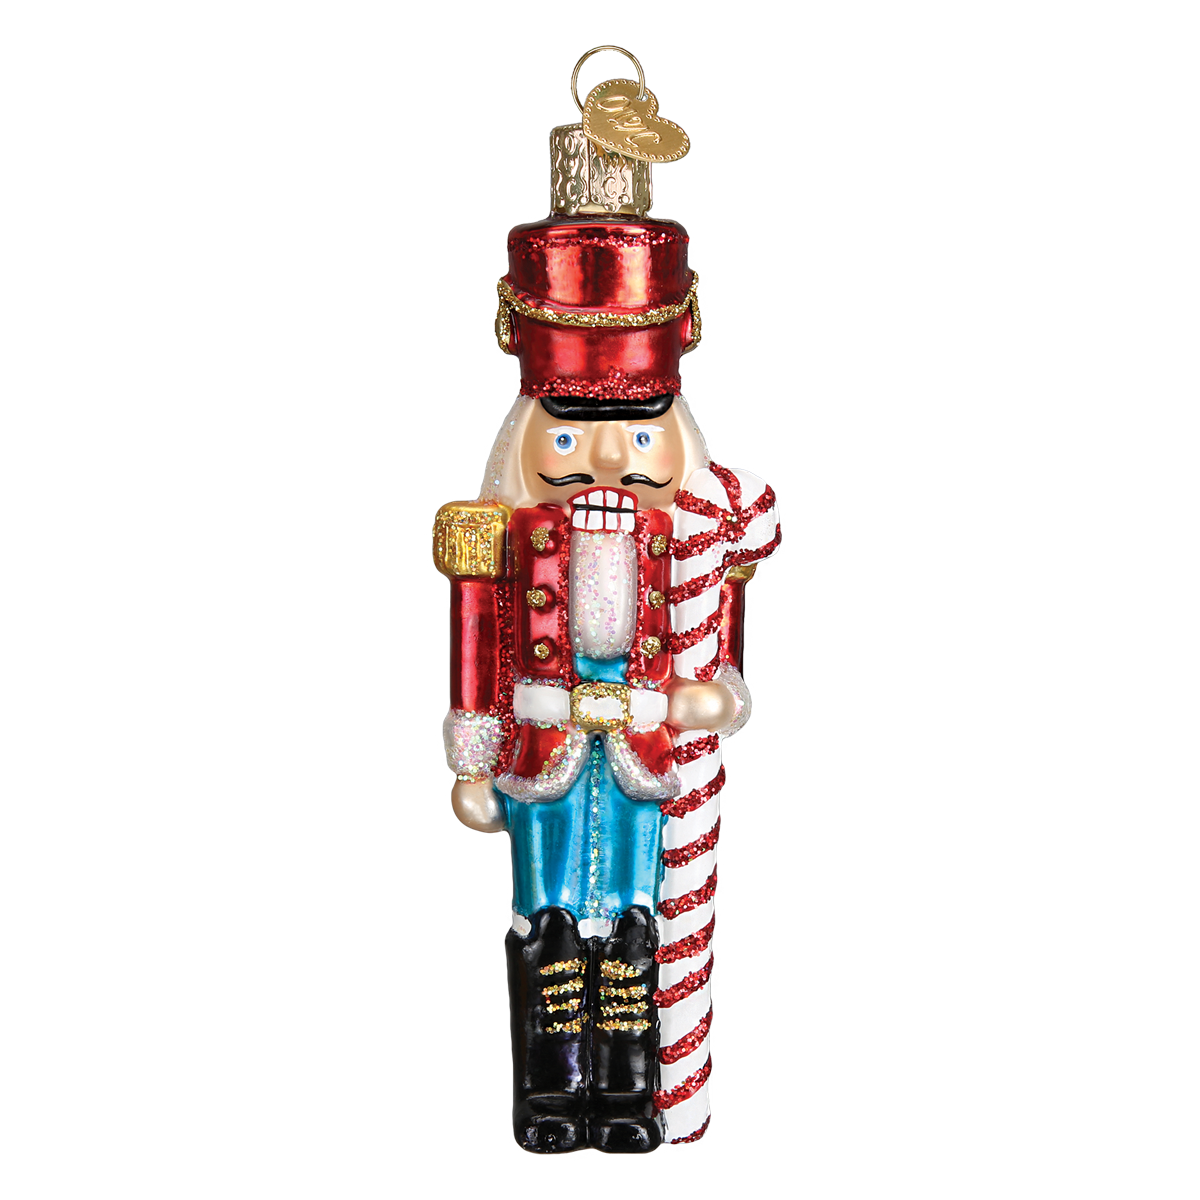 Old Word Christmas Peppermint Nutcracker Glass Ornament